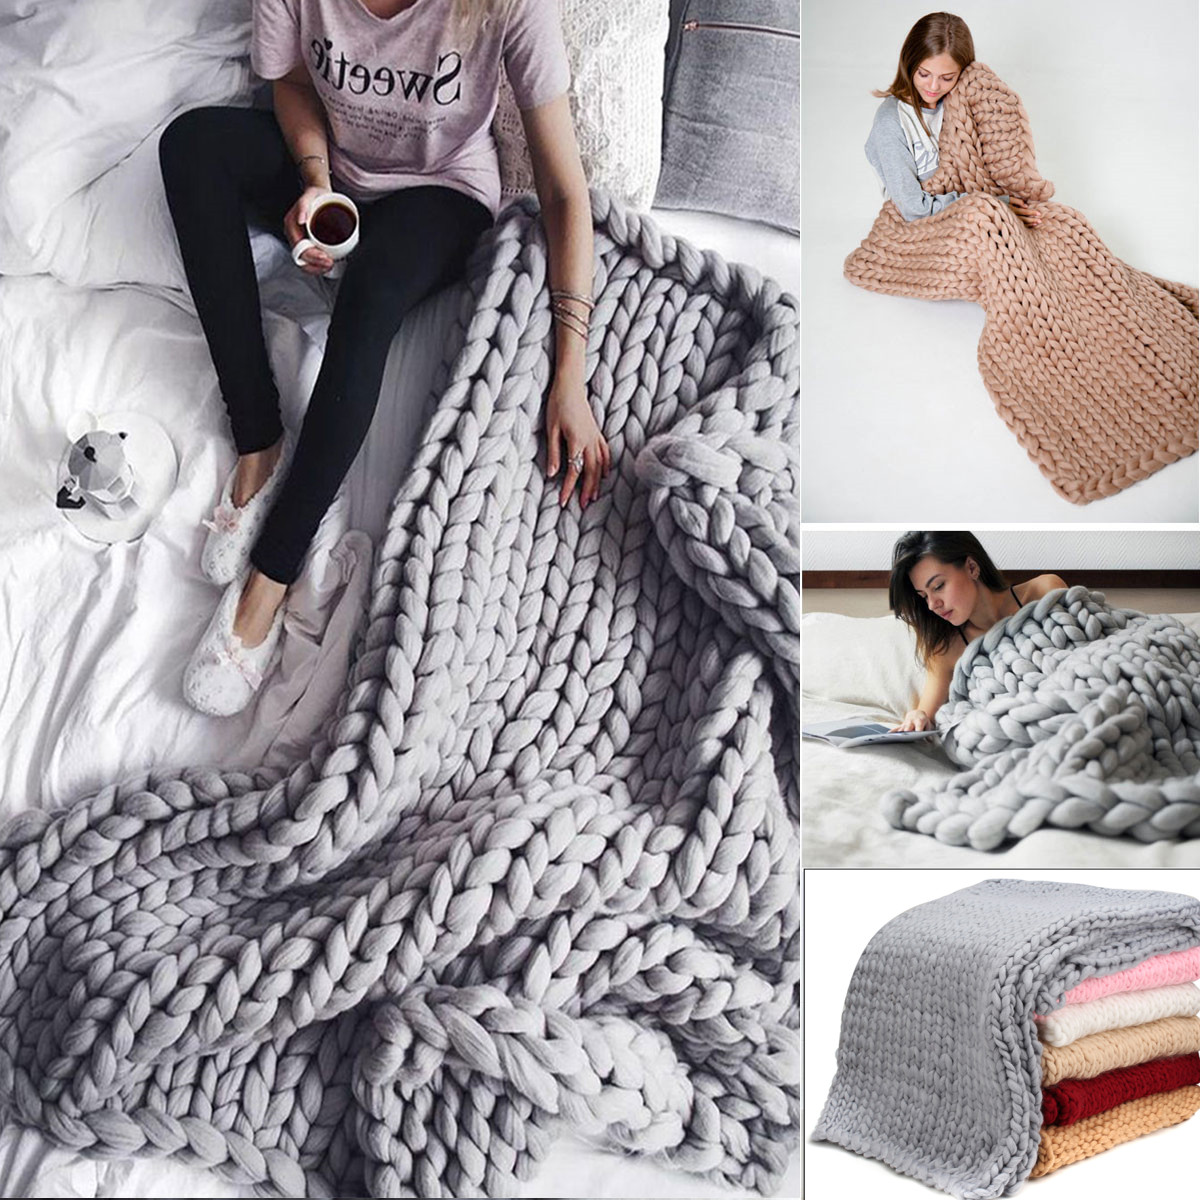 59''x39.4'' Hand-woven Bulky Winter Warm Soft Chunky Knit Blanket Thick Yarn Bedding Sofa Knitted Throw